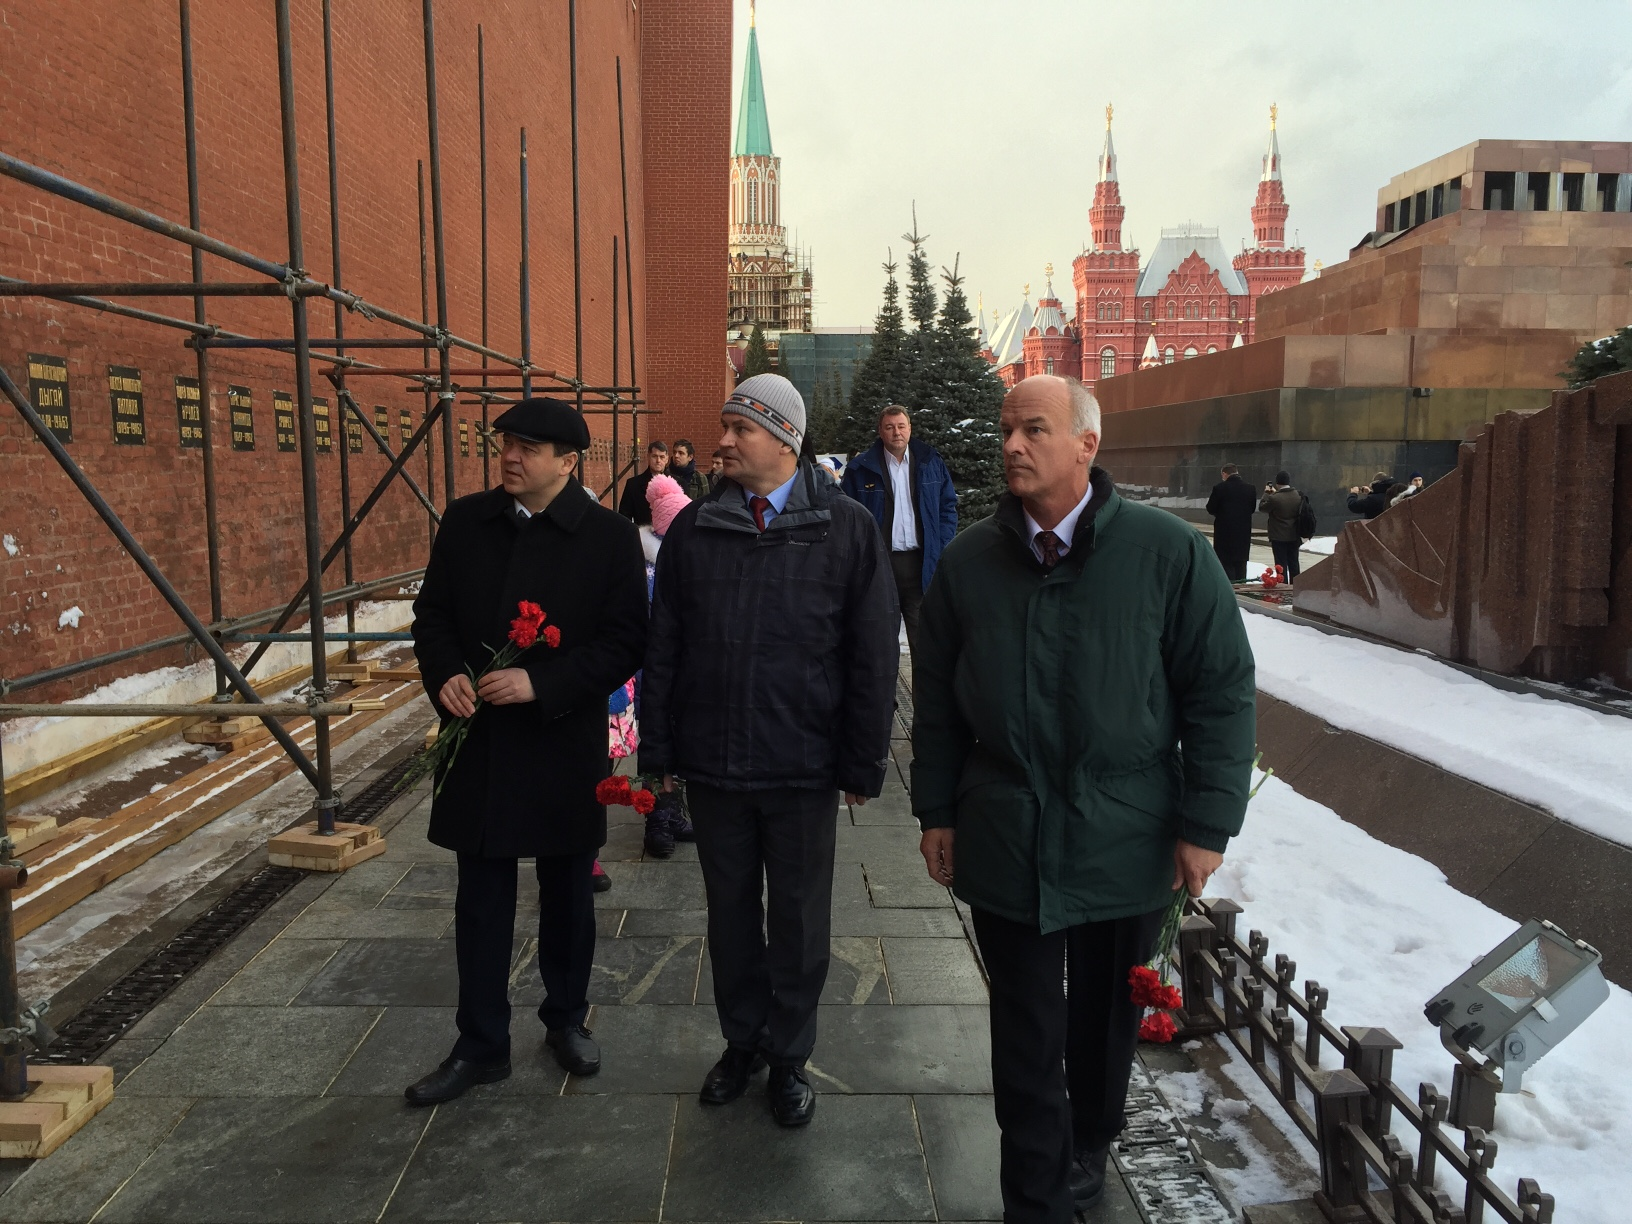 NASA astronaut Jeff Williams, right, along with Russian Cosmonauts Oleg Skripochka, left, and Alexey Ovchnin prepare for a ceremonial laying of flowers at the graves of Yuri Gagarin and Sergey Korolev outside the Kremlin near Red Square in Moscow on Friday, Feb. 26, 2016.